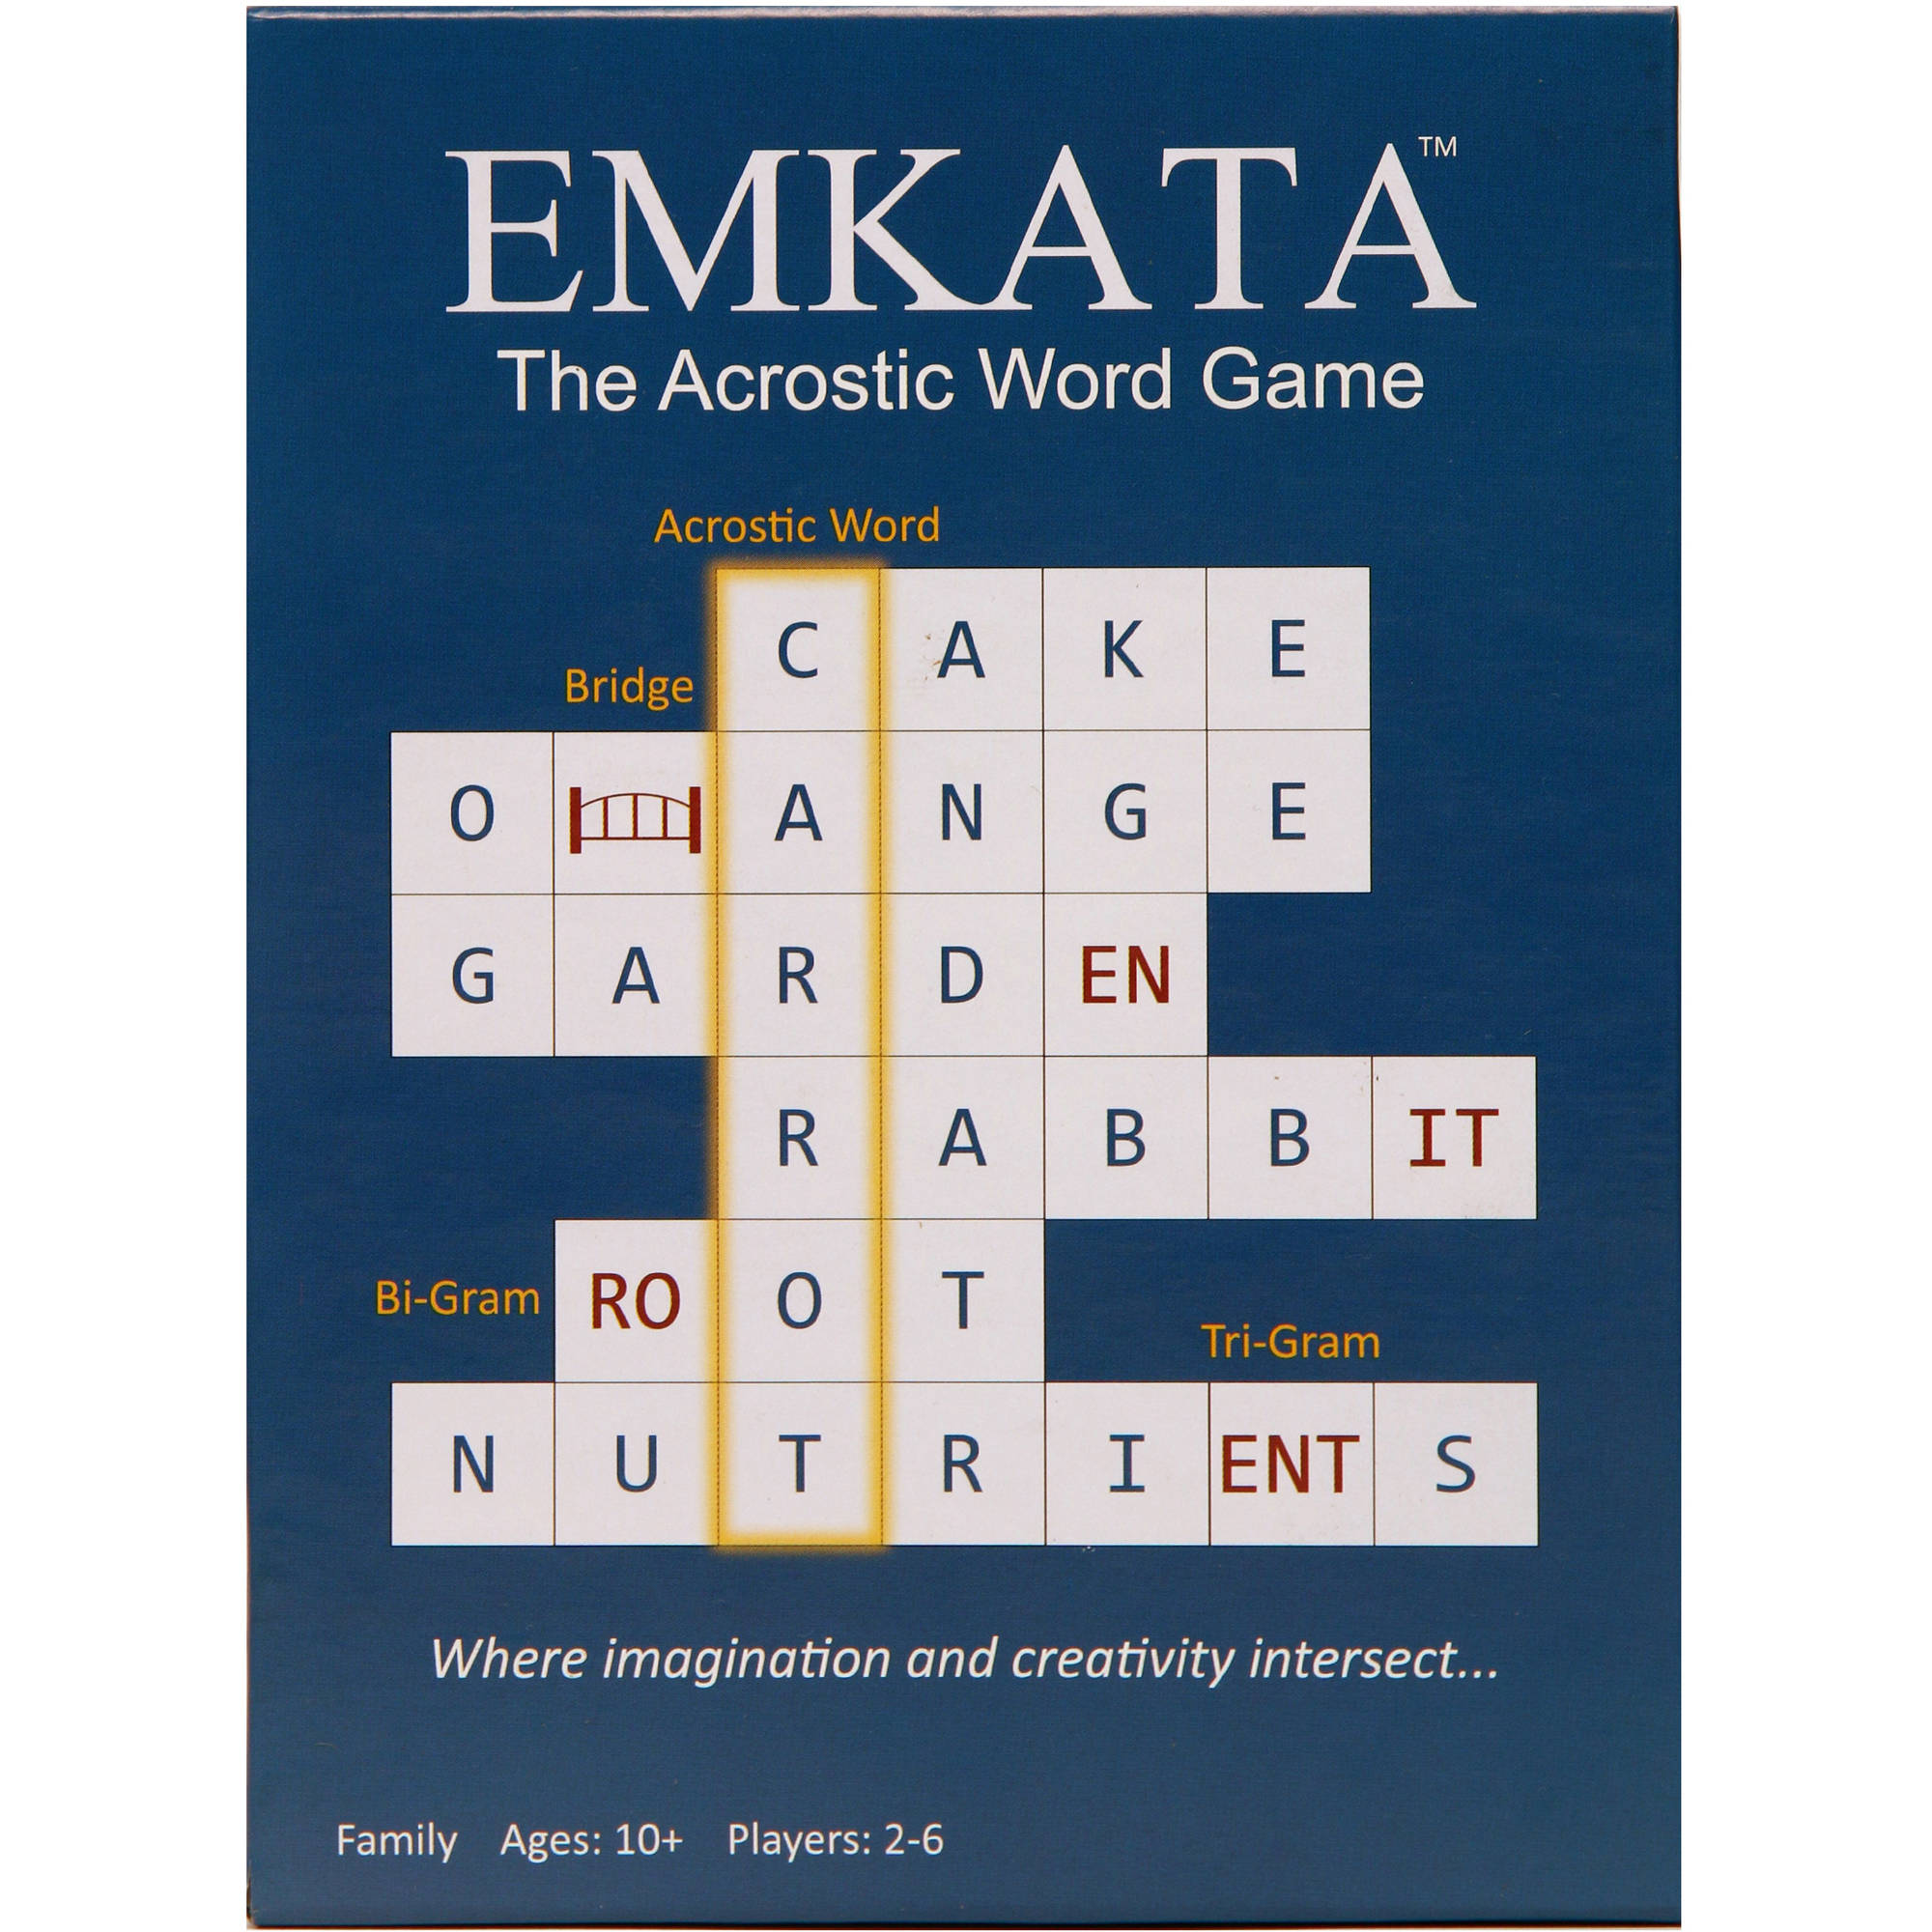 The Original Acrostic Word Game EMKATA